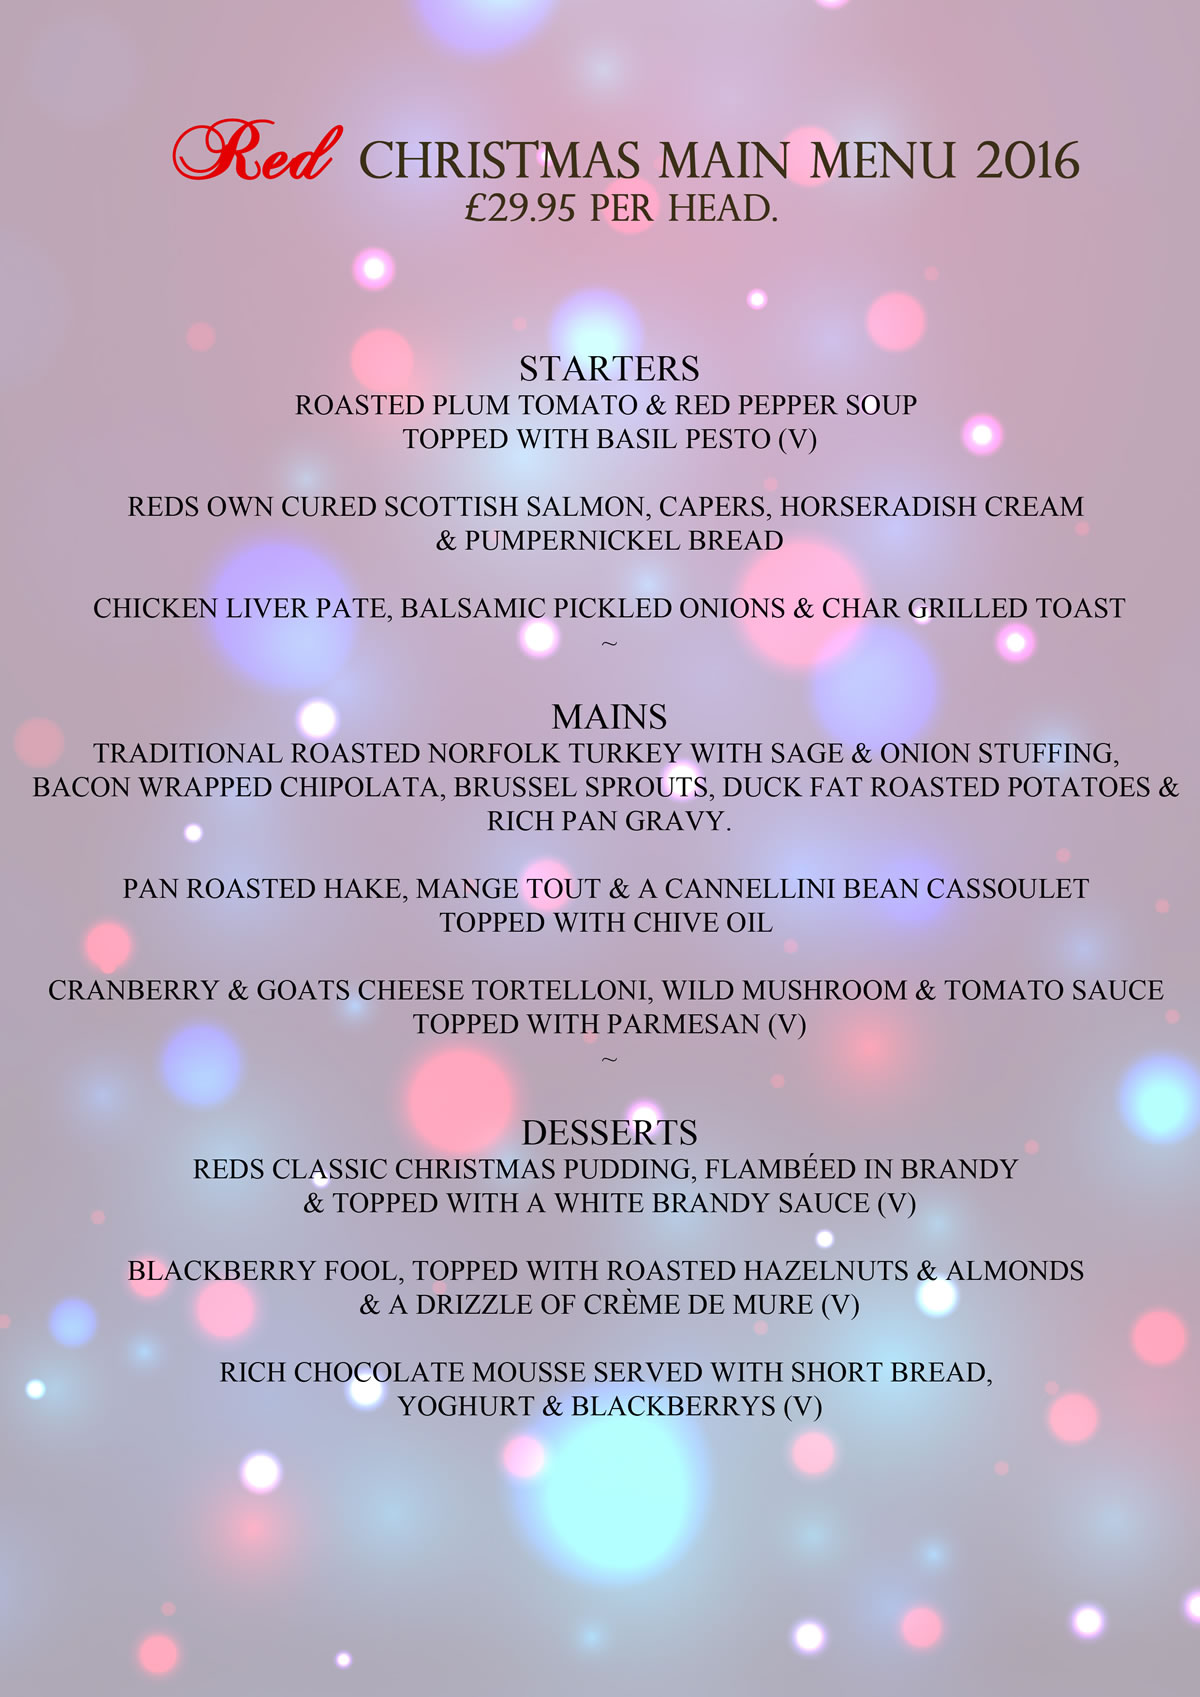 Christmas Menu at Red Weybridge includes Roast Turkey or alternative of fish and vegetarian mains dishes